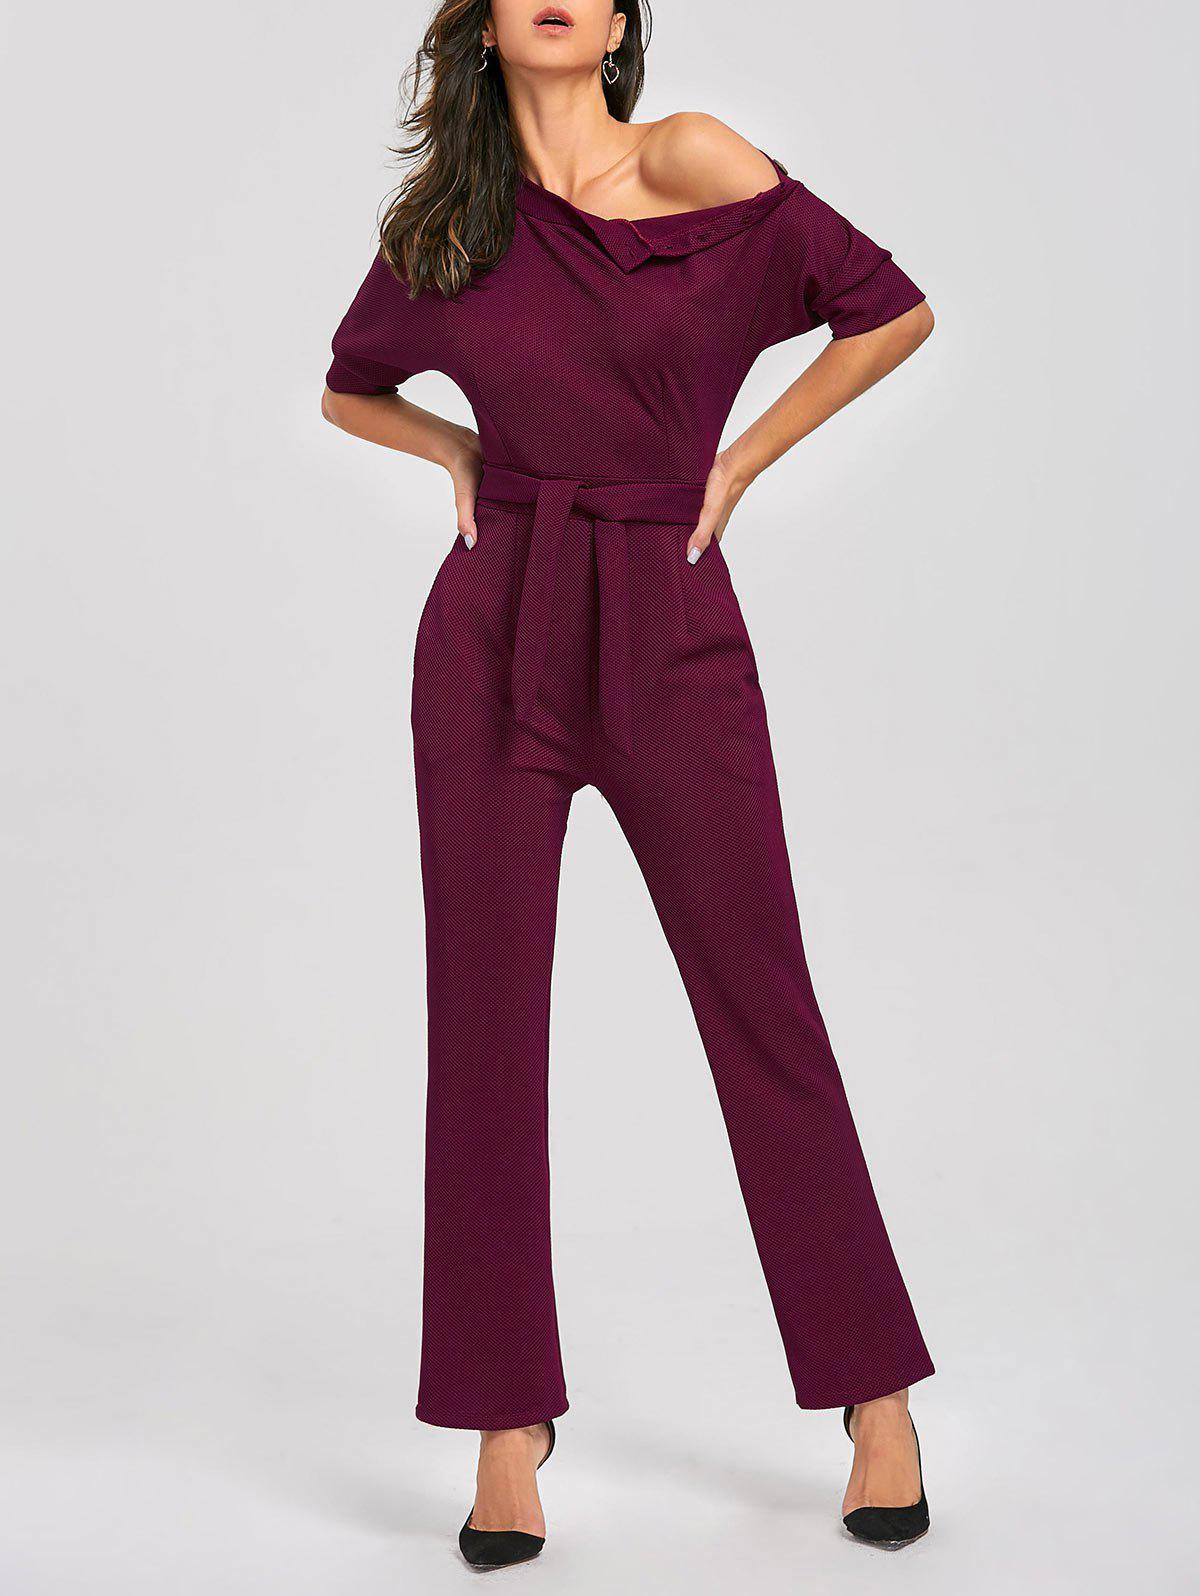 Convertible Collar Belted Jumpsuit - WINE RED XL